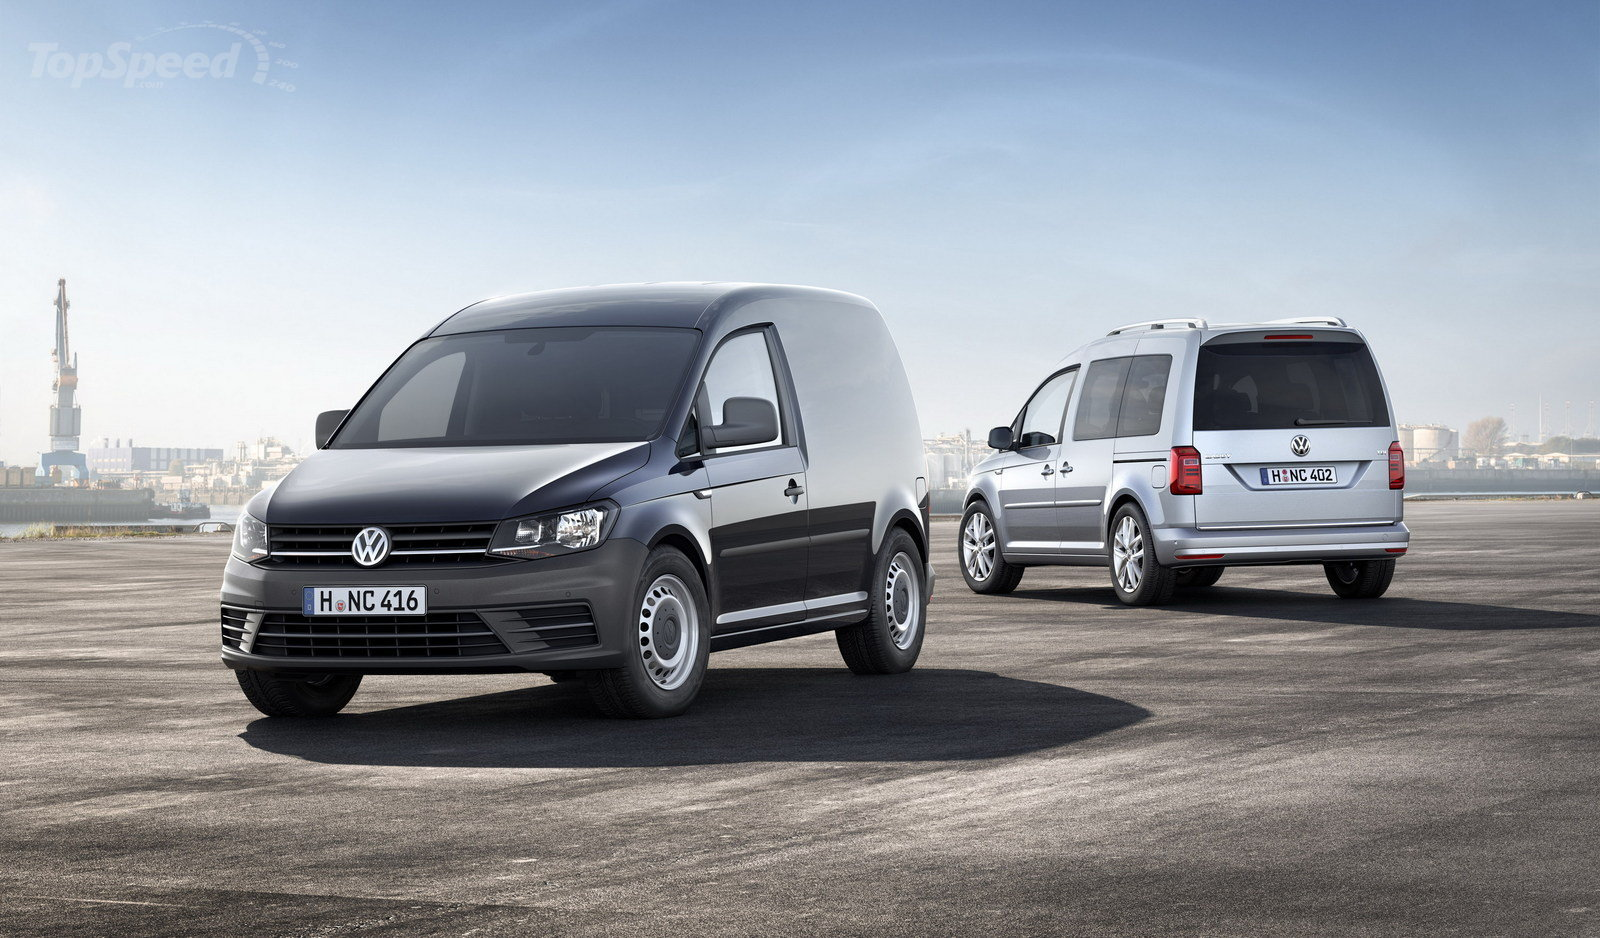 yeni volkswagen caddy model resmi